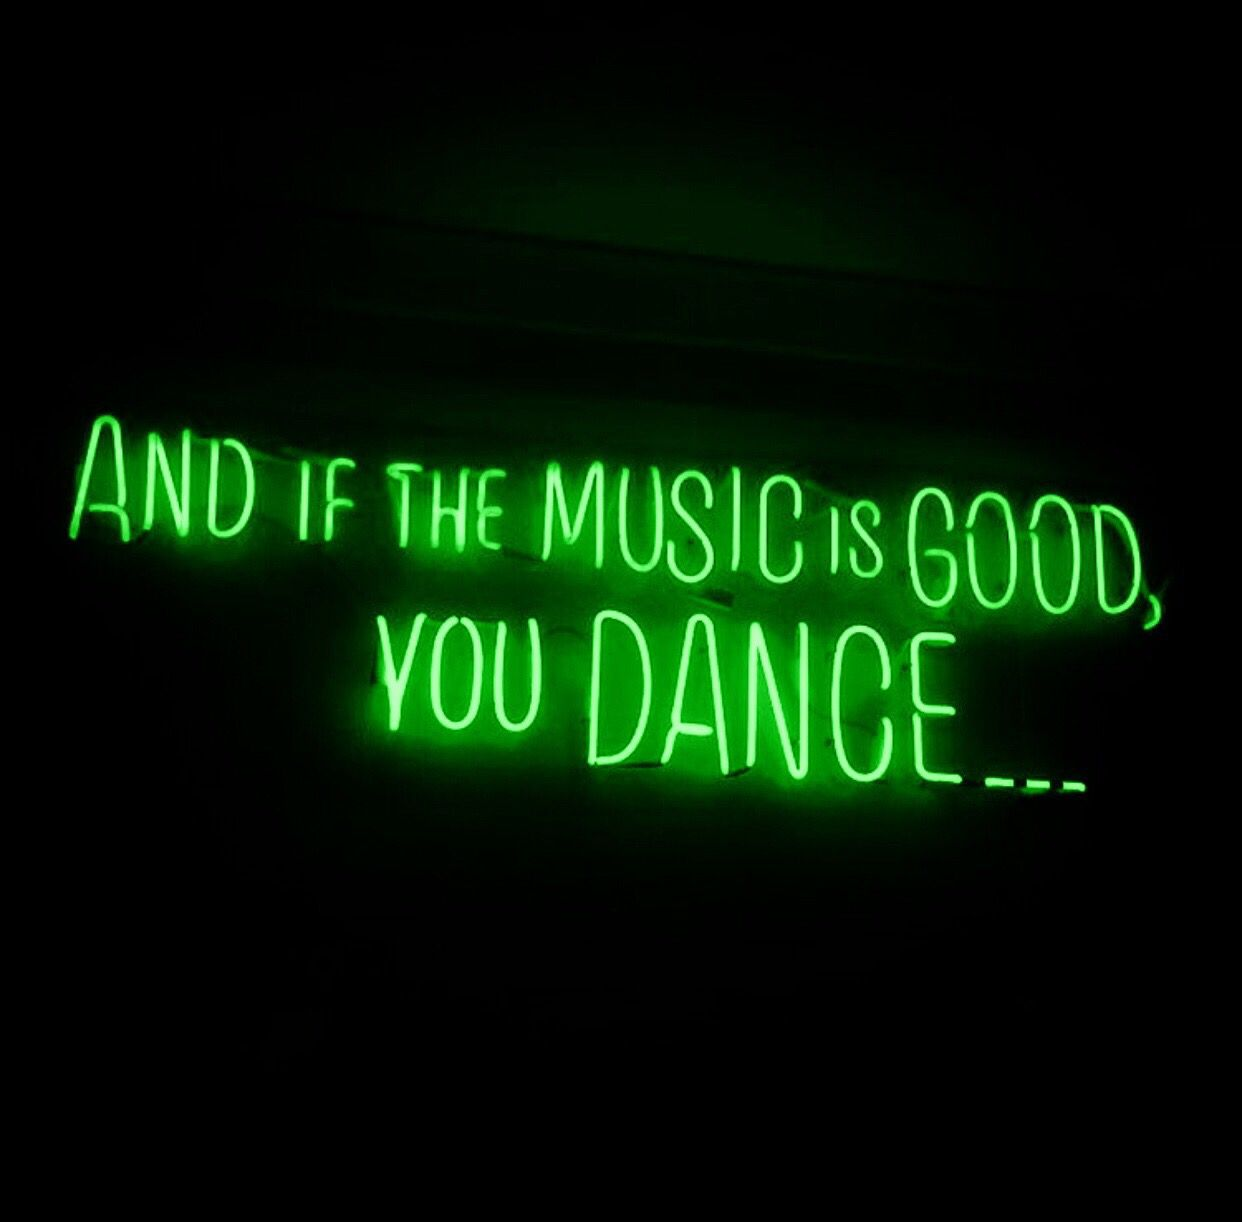 Pin By Twinkle On Neon Signs Green Aesthetic Dark Green Aesthetic Neon Quotes